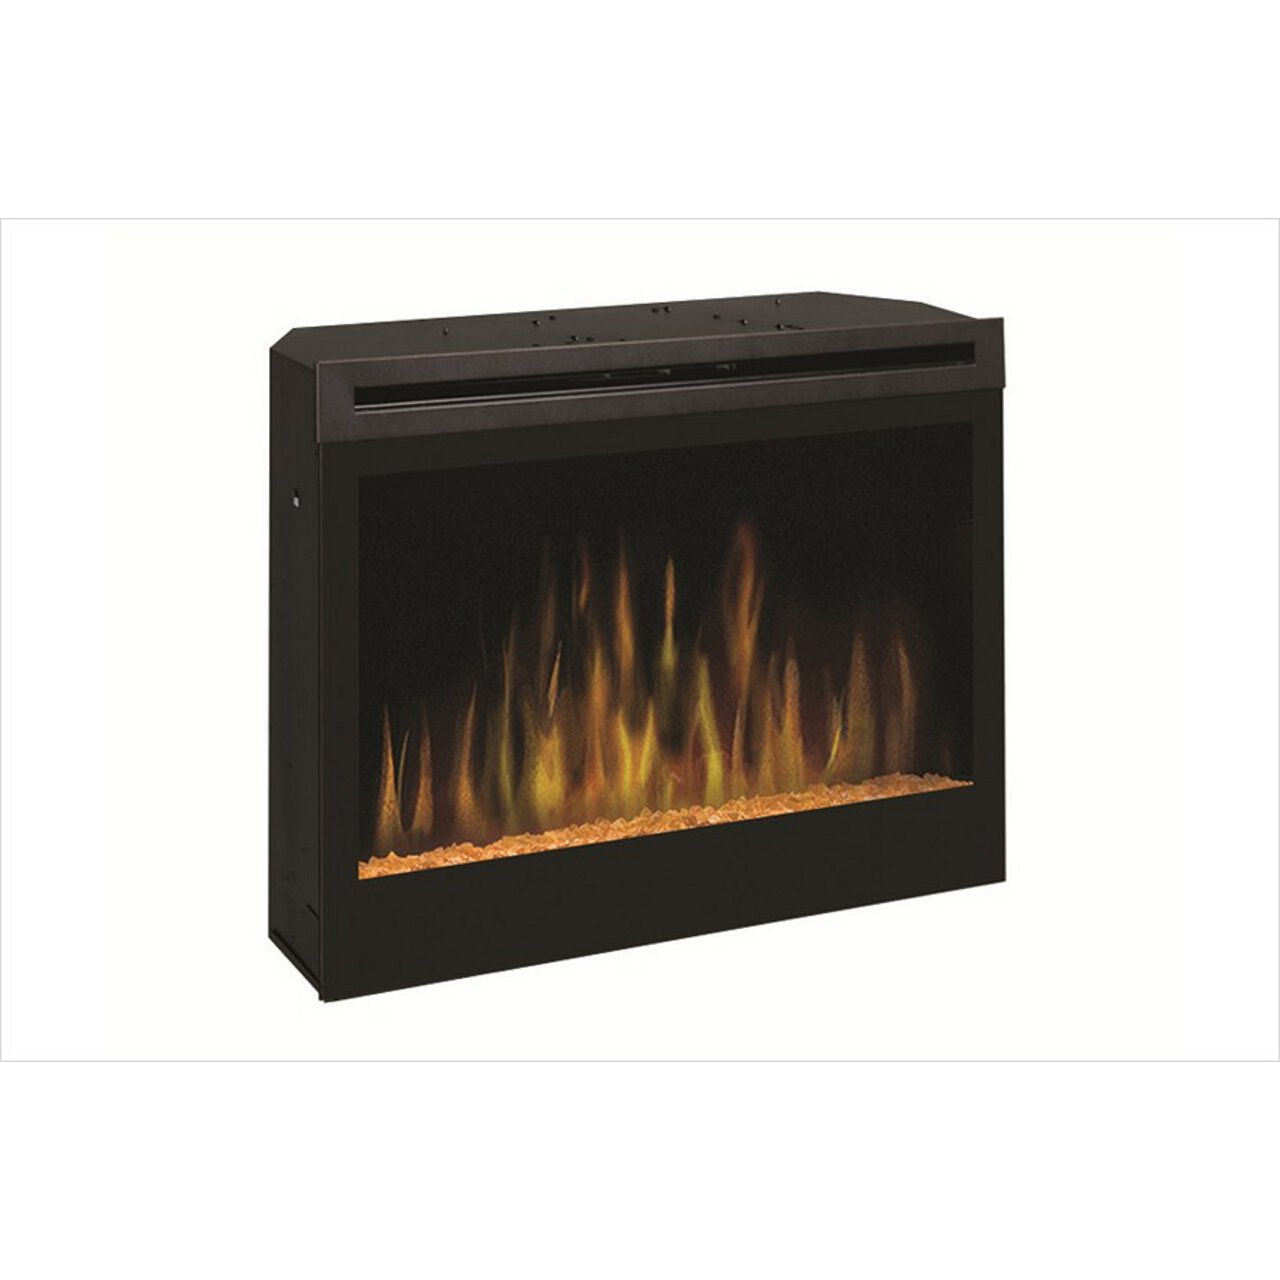 amazon com dimplex dfg3033 33 inch self trimming electric firebox